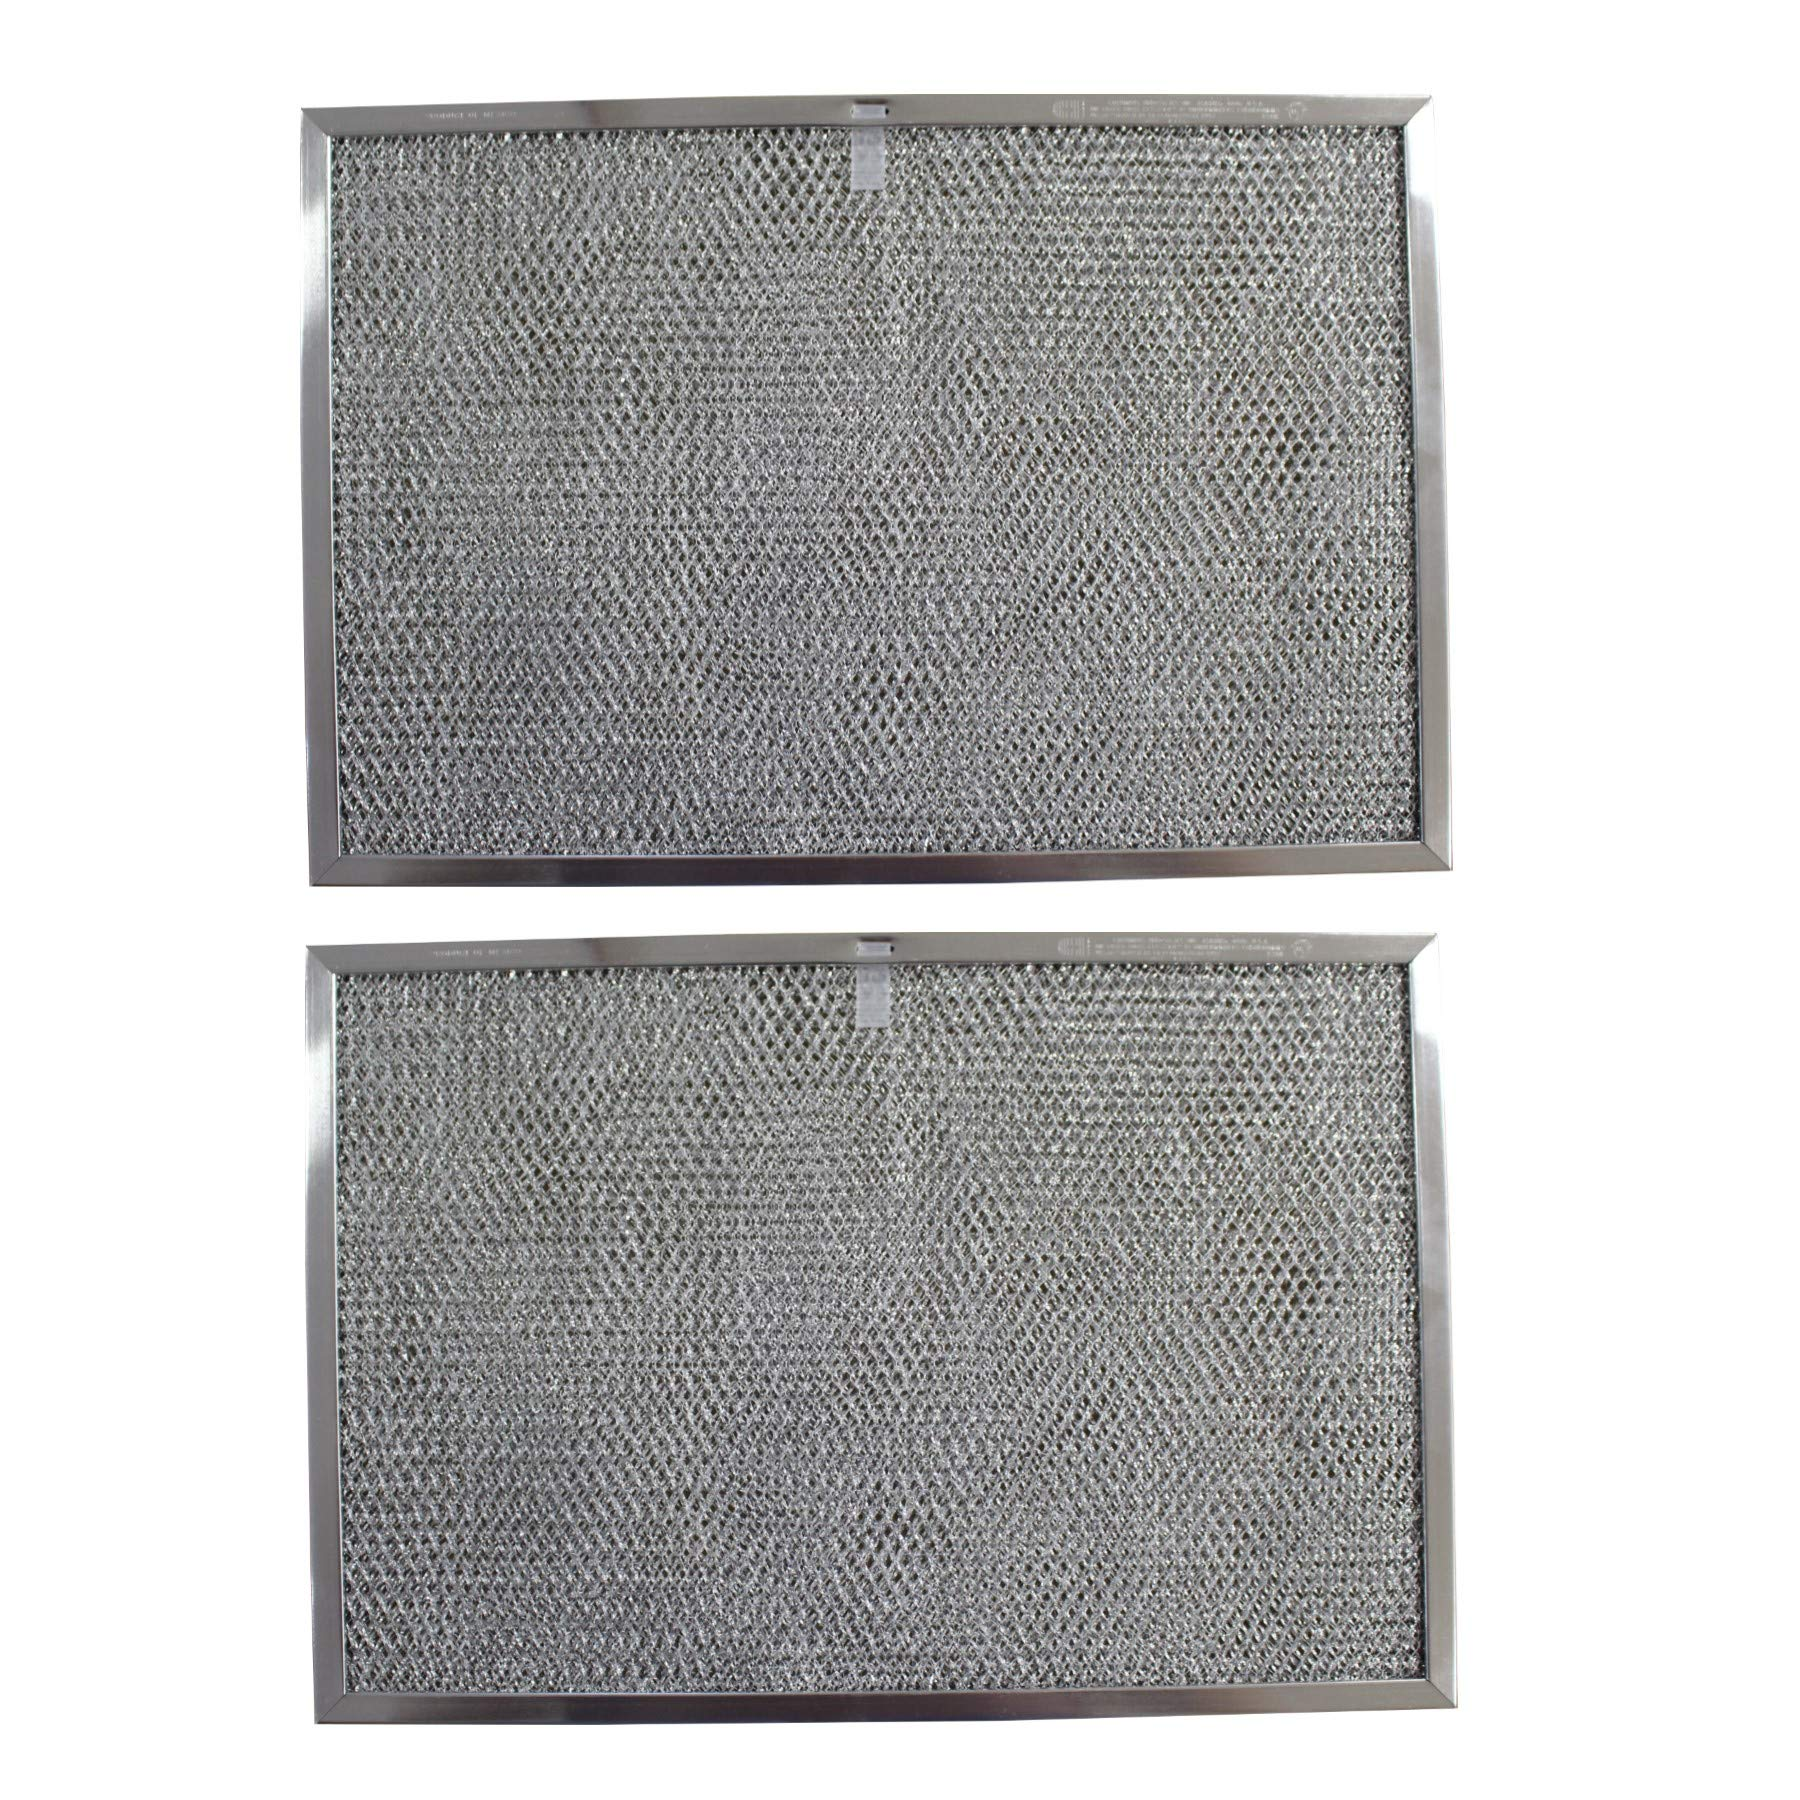 Replacement Aluminum Filters Compatible with GE WB02X2158, GE WB2X2158,G 8612,RHF1124  11 3/8 x 17 x